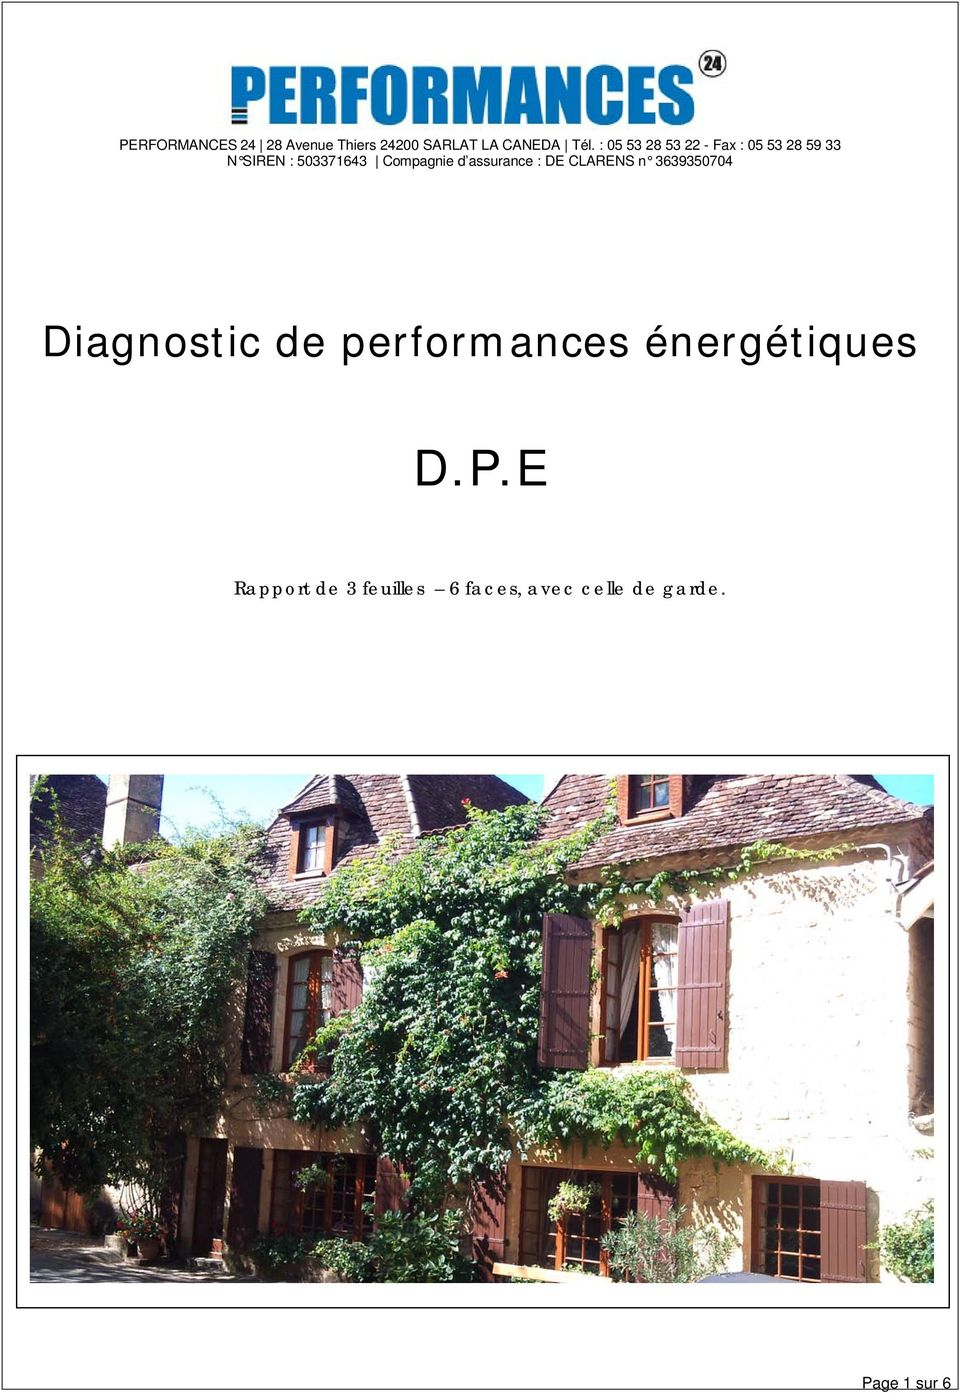 d assurance : DE CLARENS n 3639350704 Diagnostic de performances